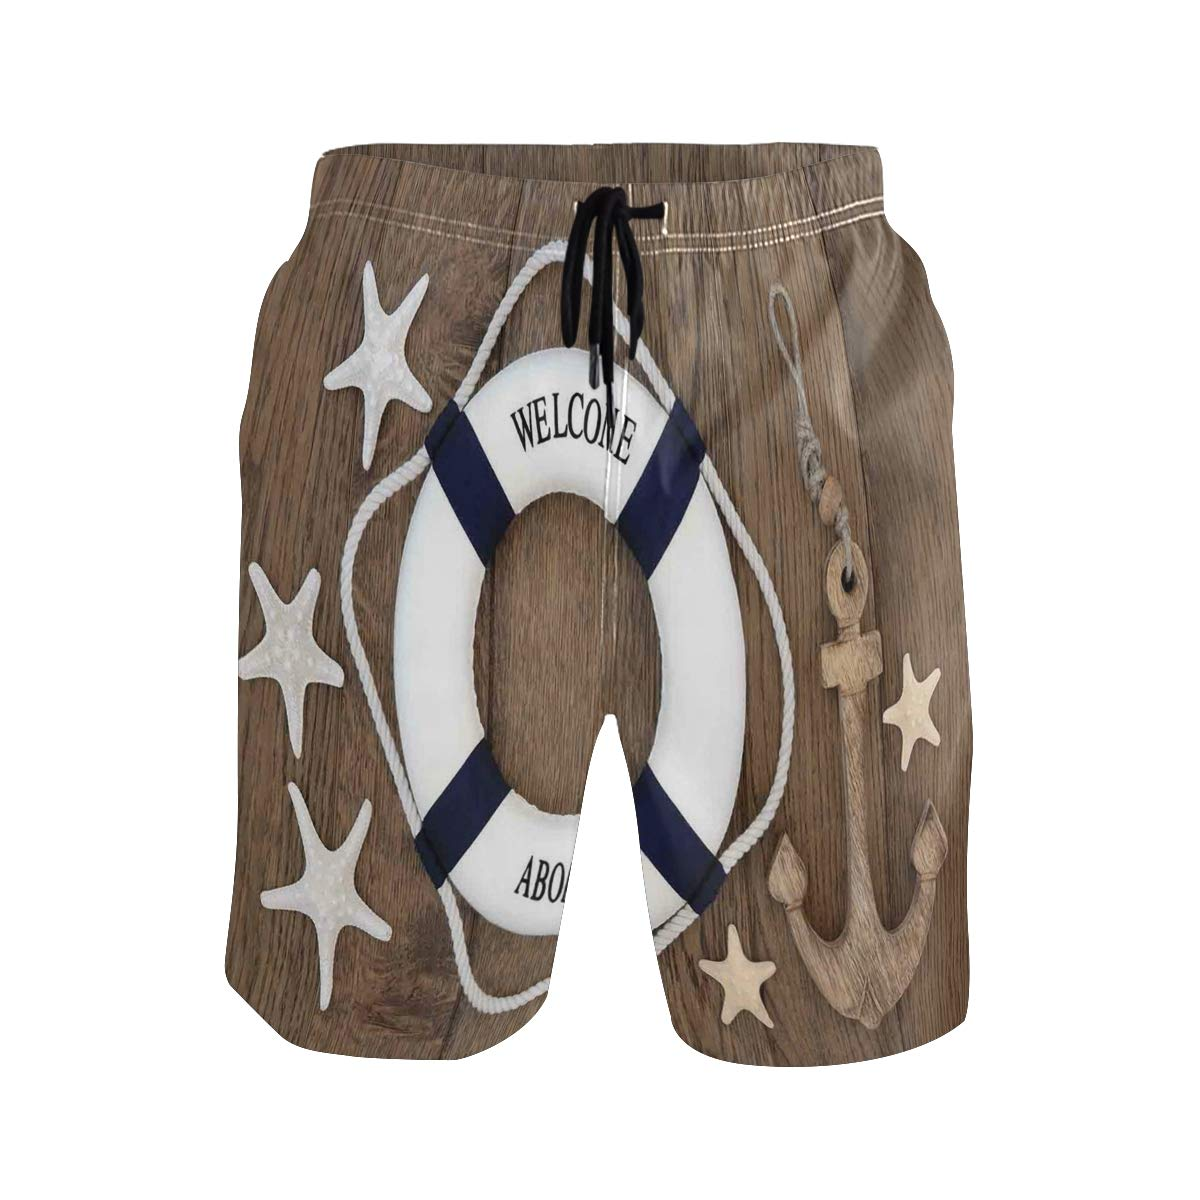 COVASA Mens Summer ShortsLifebuoy Anchor Starfish Seashells Over Old Oak Backg